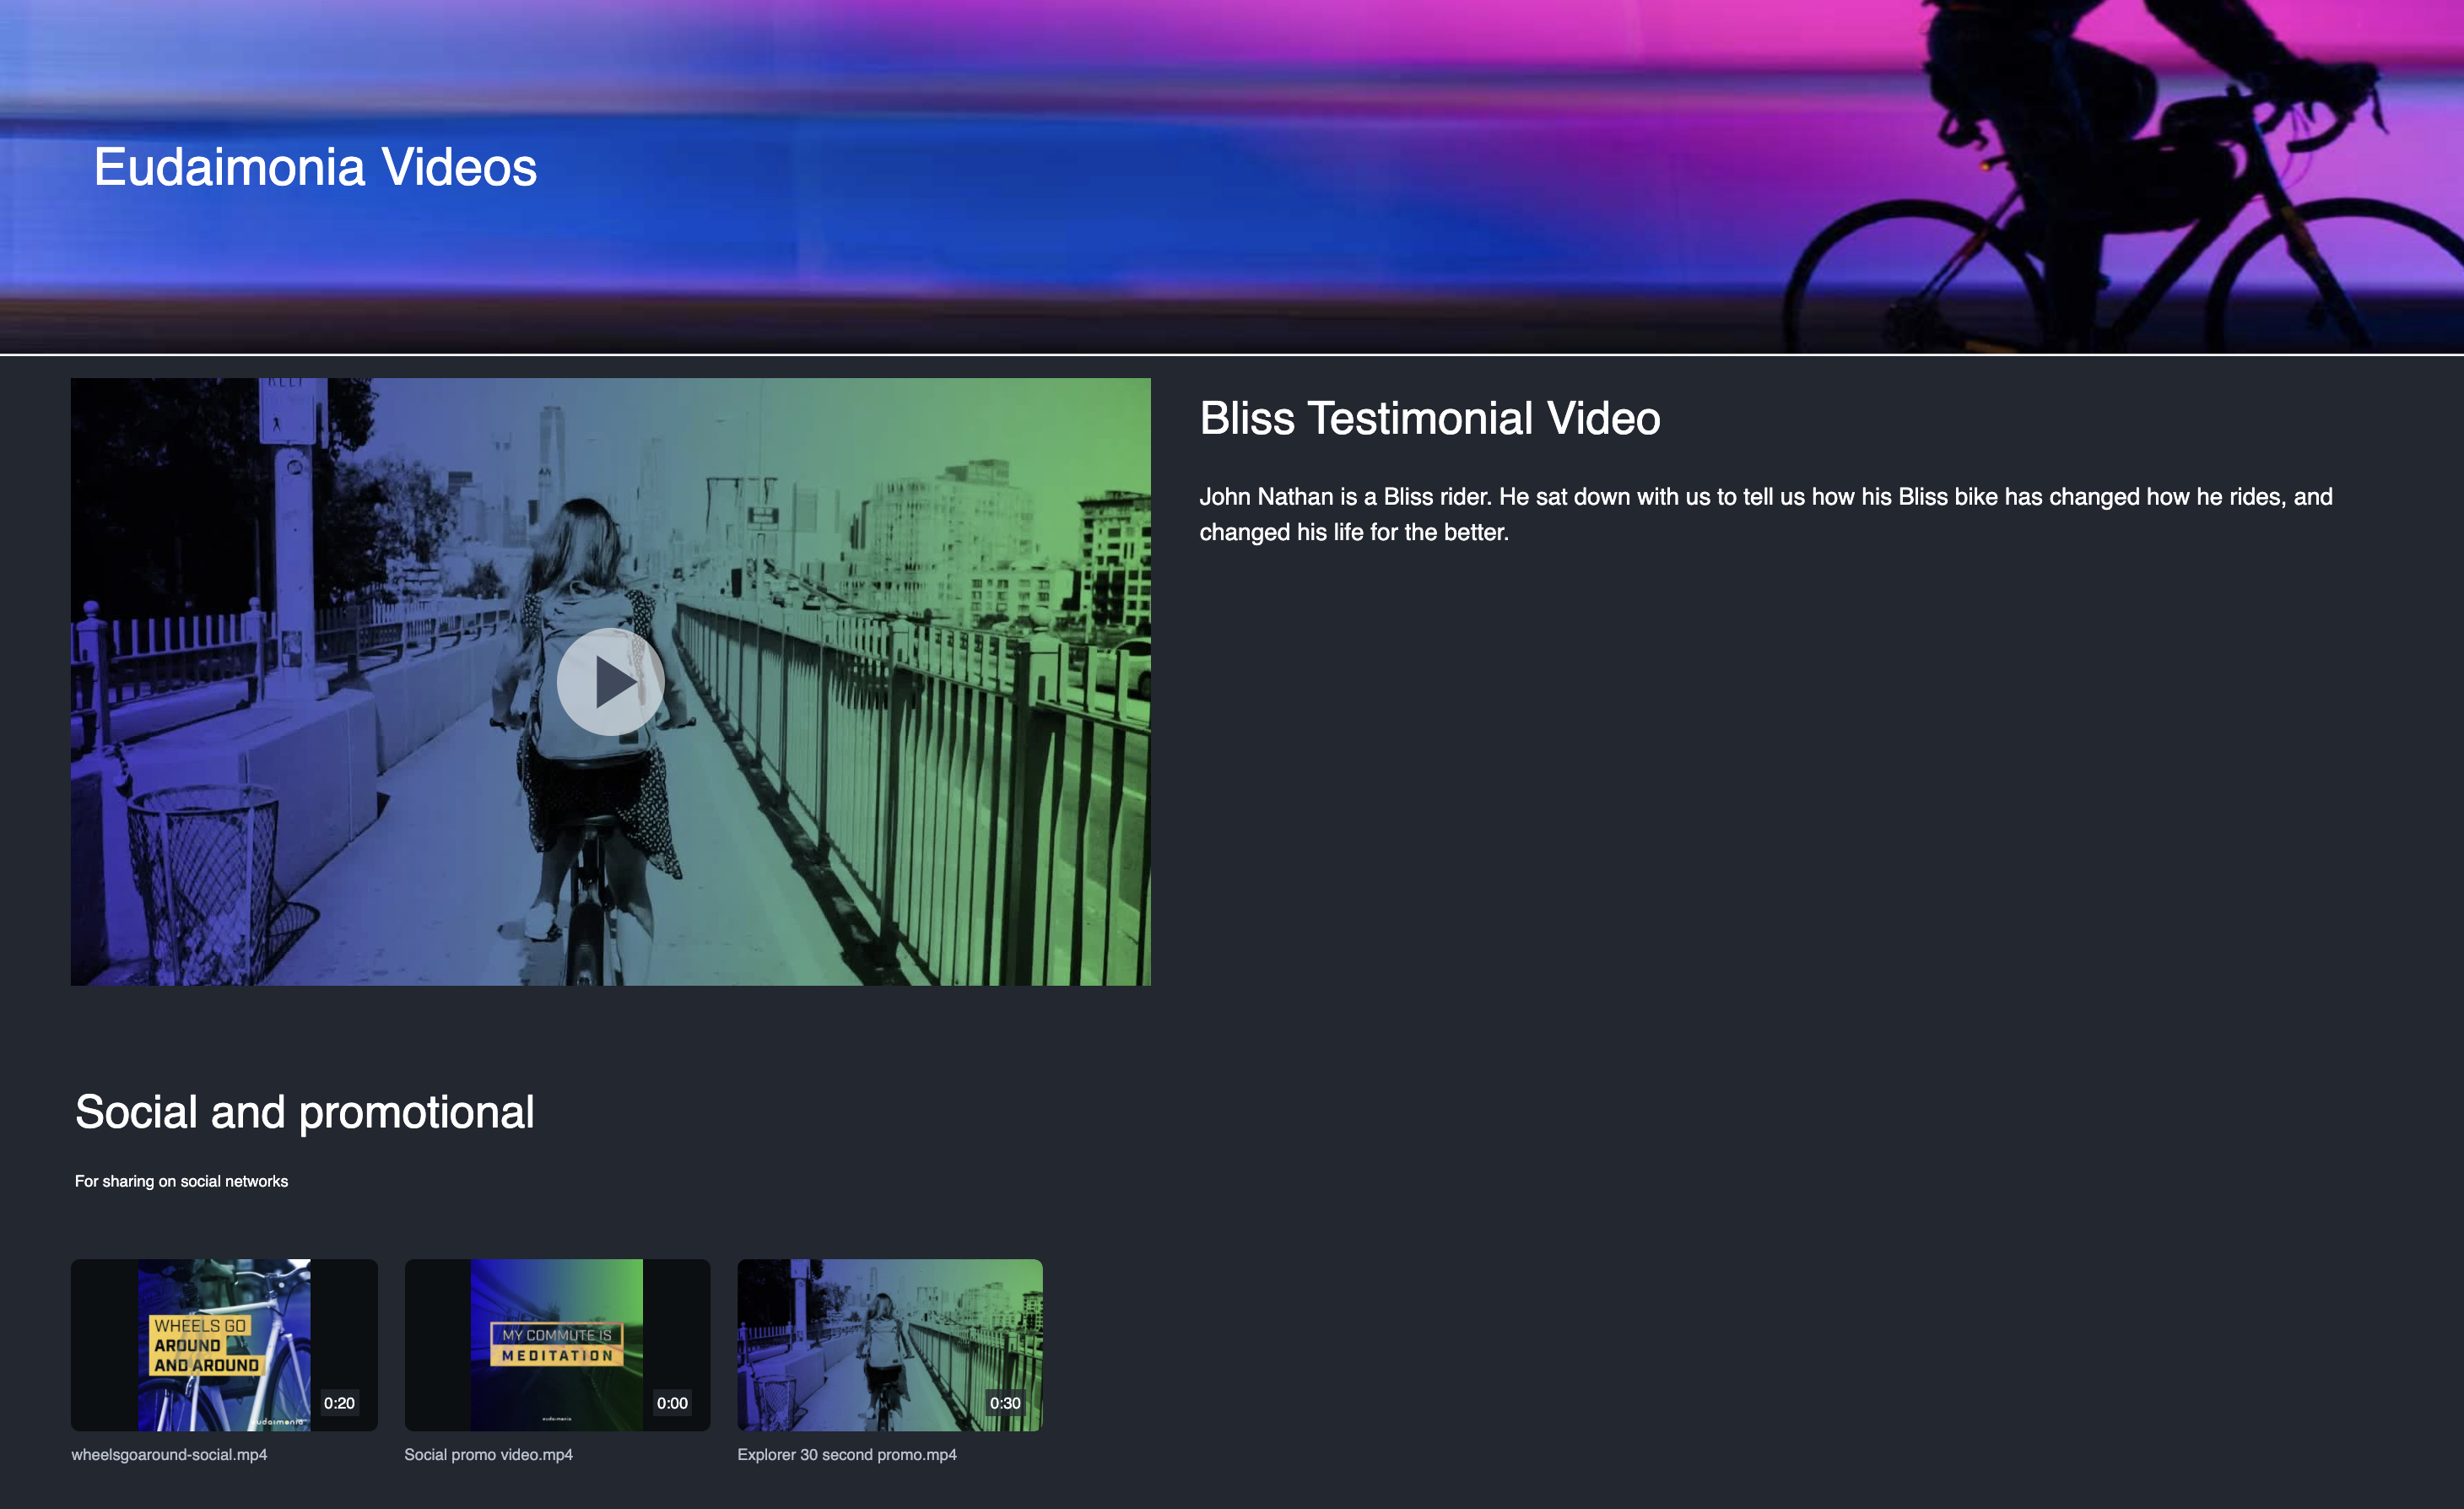 Screenshot of a video in a portal with the mail video featured and the video playlist carousel below it.